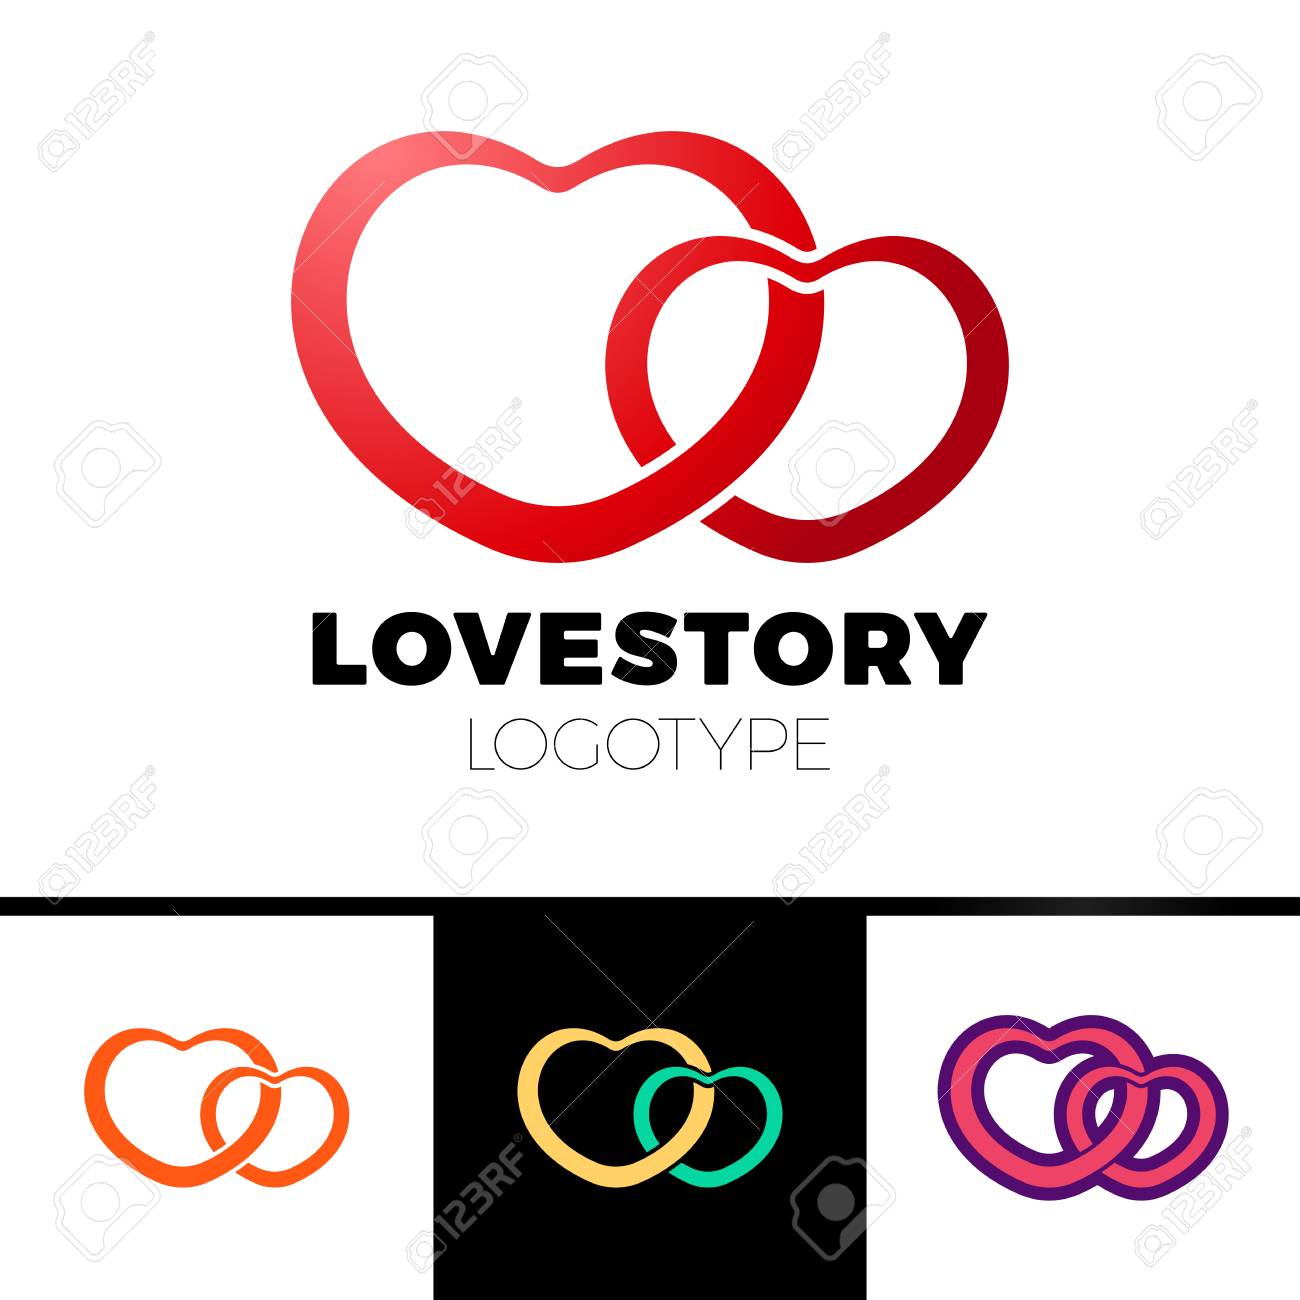 Two Hearts Logo Abstract Vector Symbol Of Love Logotype Royalty